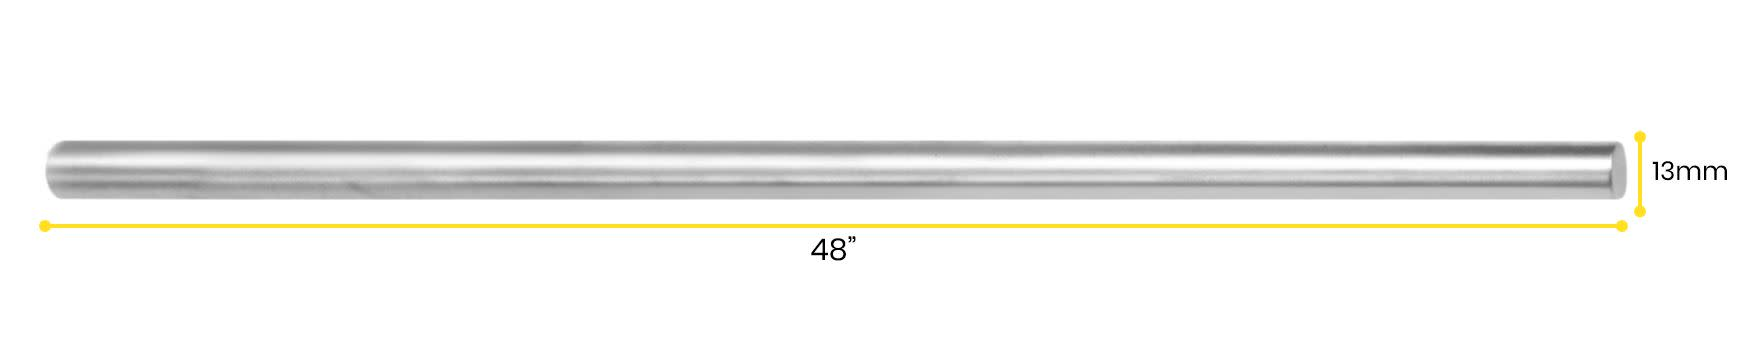 "Retort Stand Rod, 48"" (120cm) - Aluminum - Unthreaded, Round Shaft"